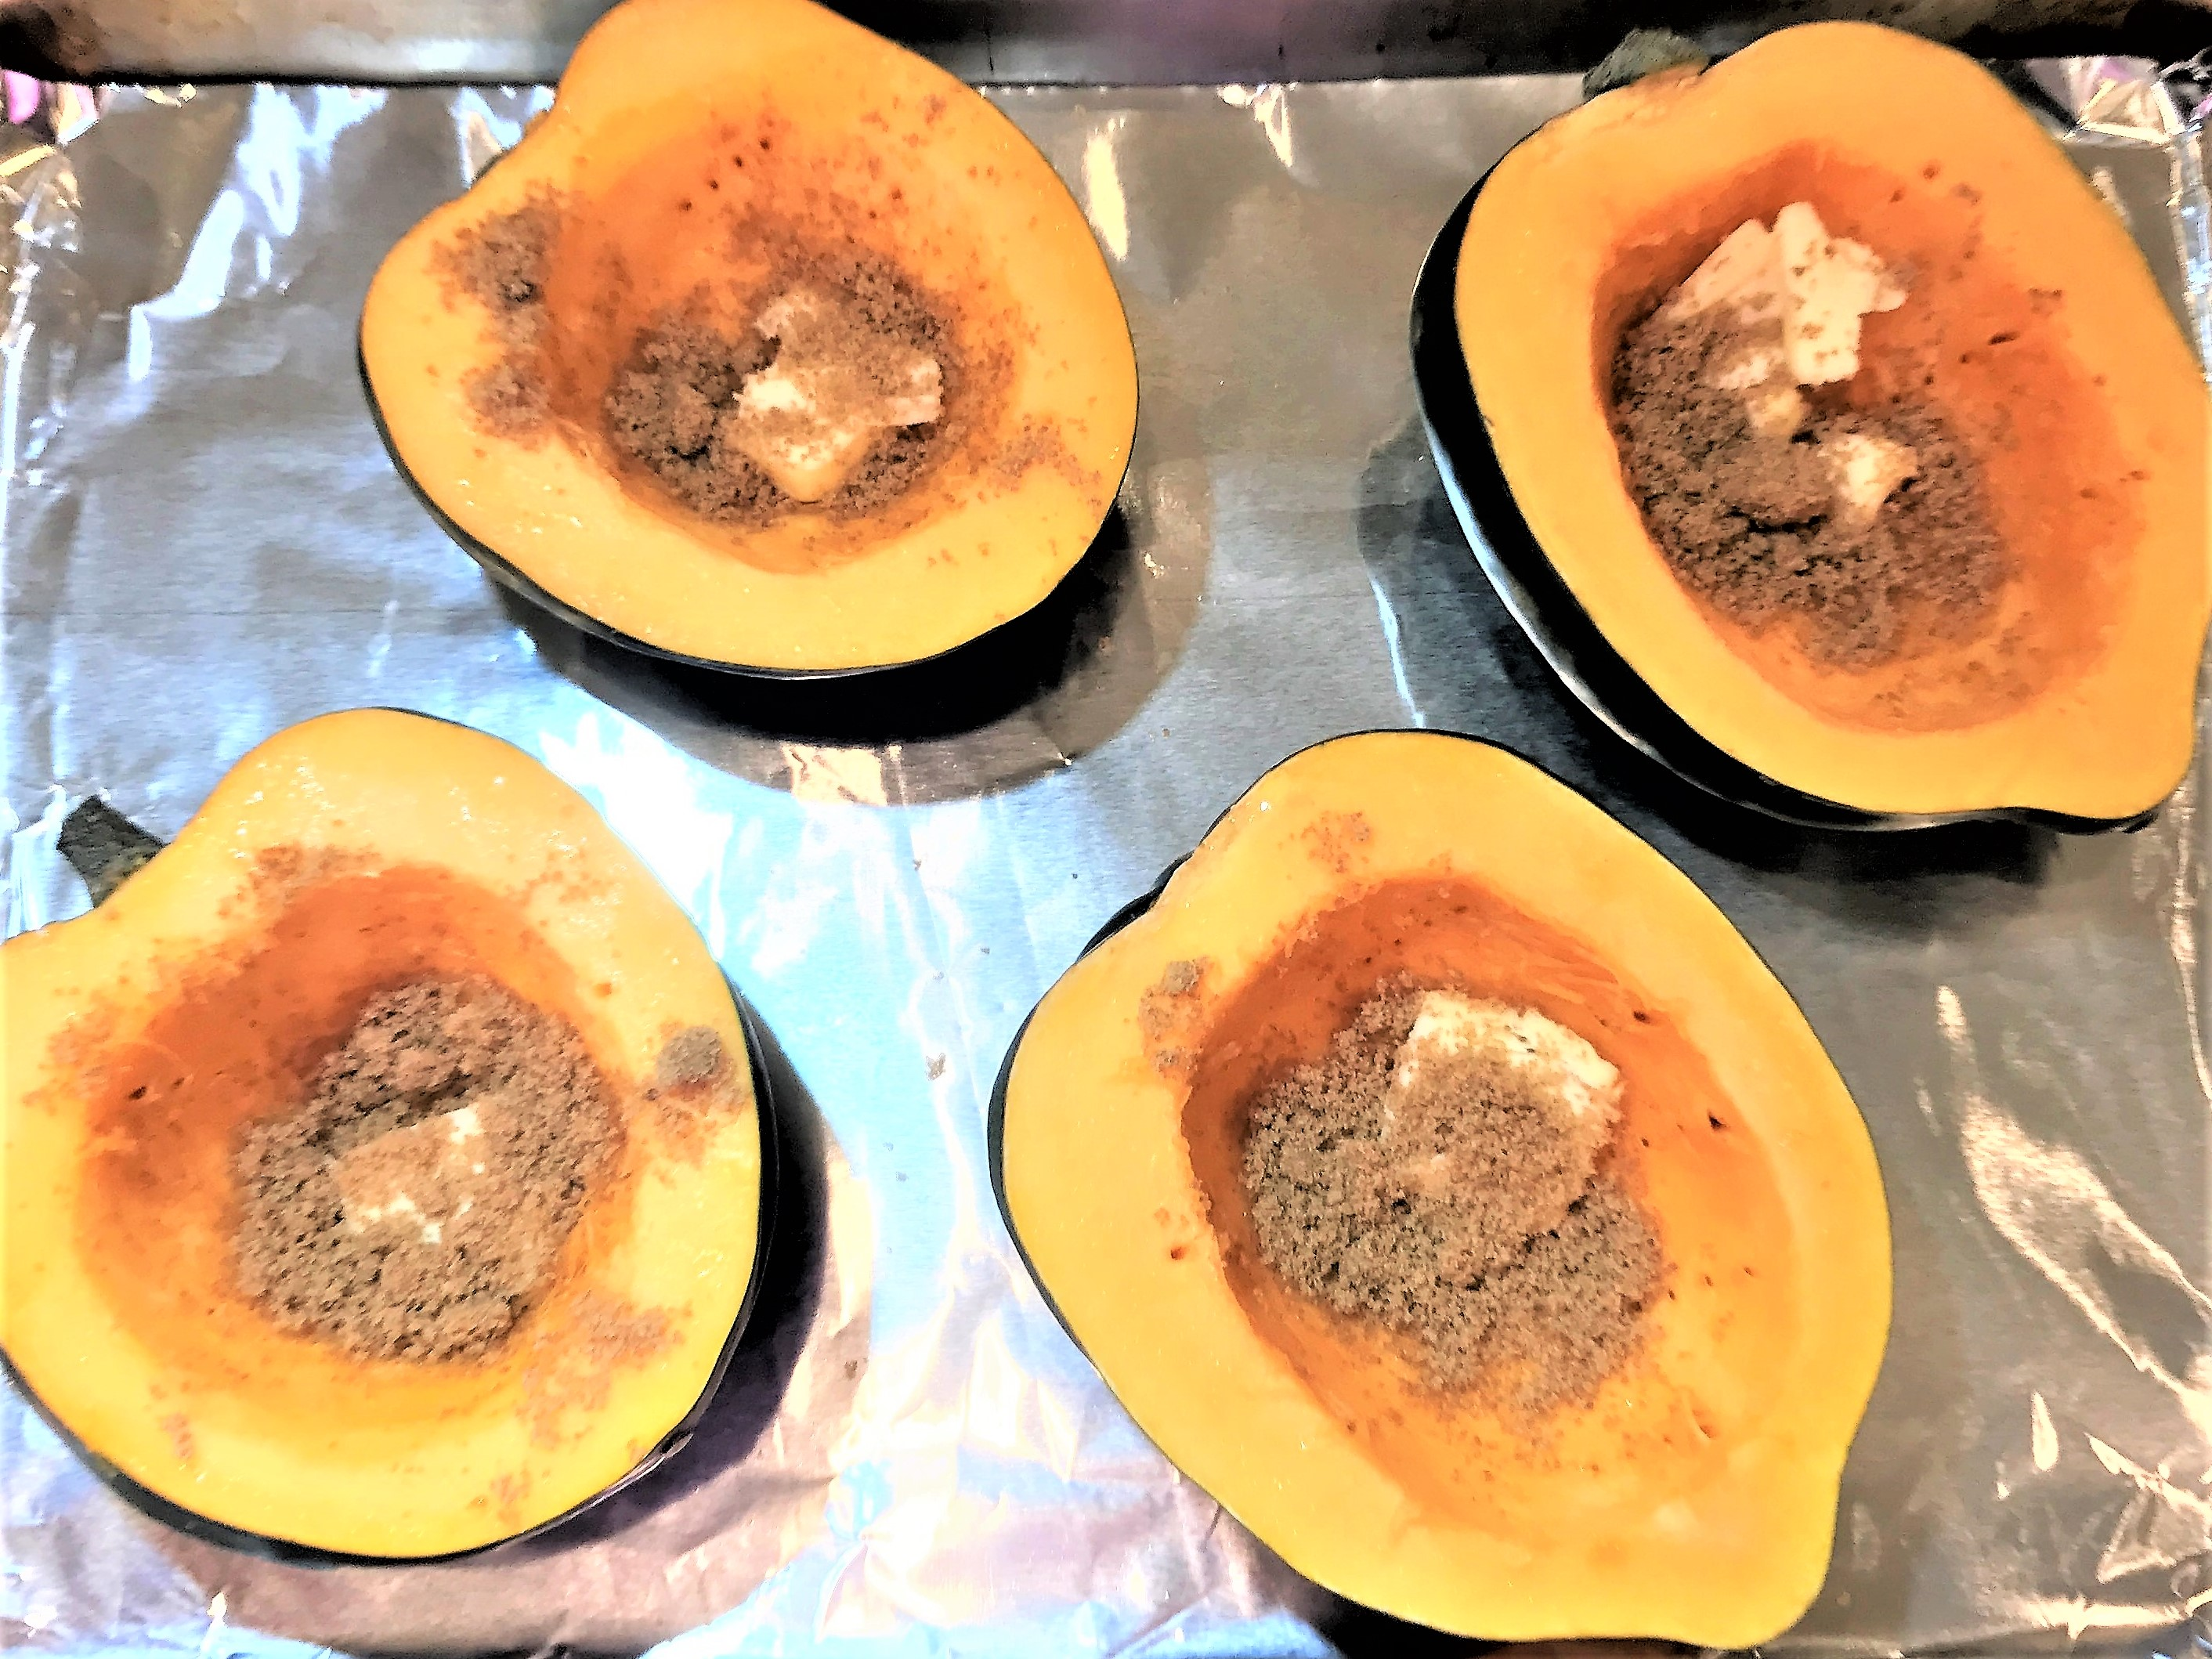 Baked Acorn Squash with Butter & Brown Sugar